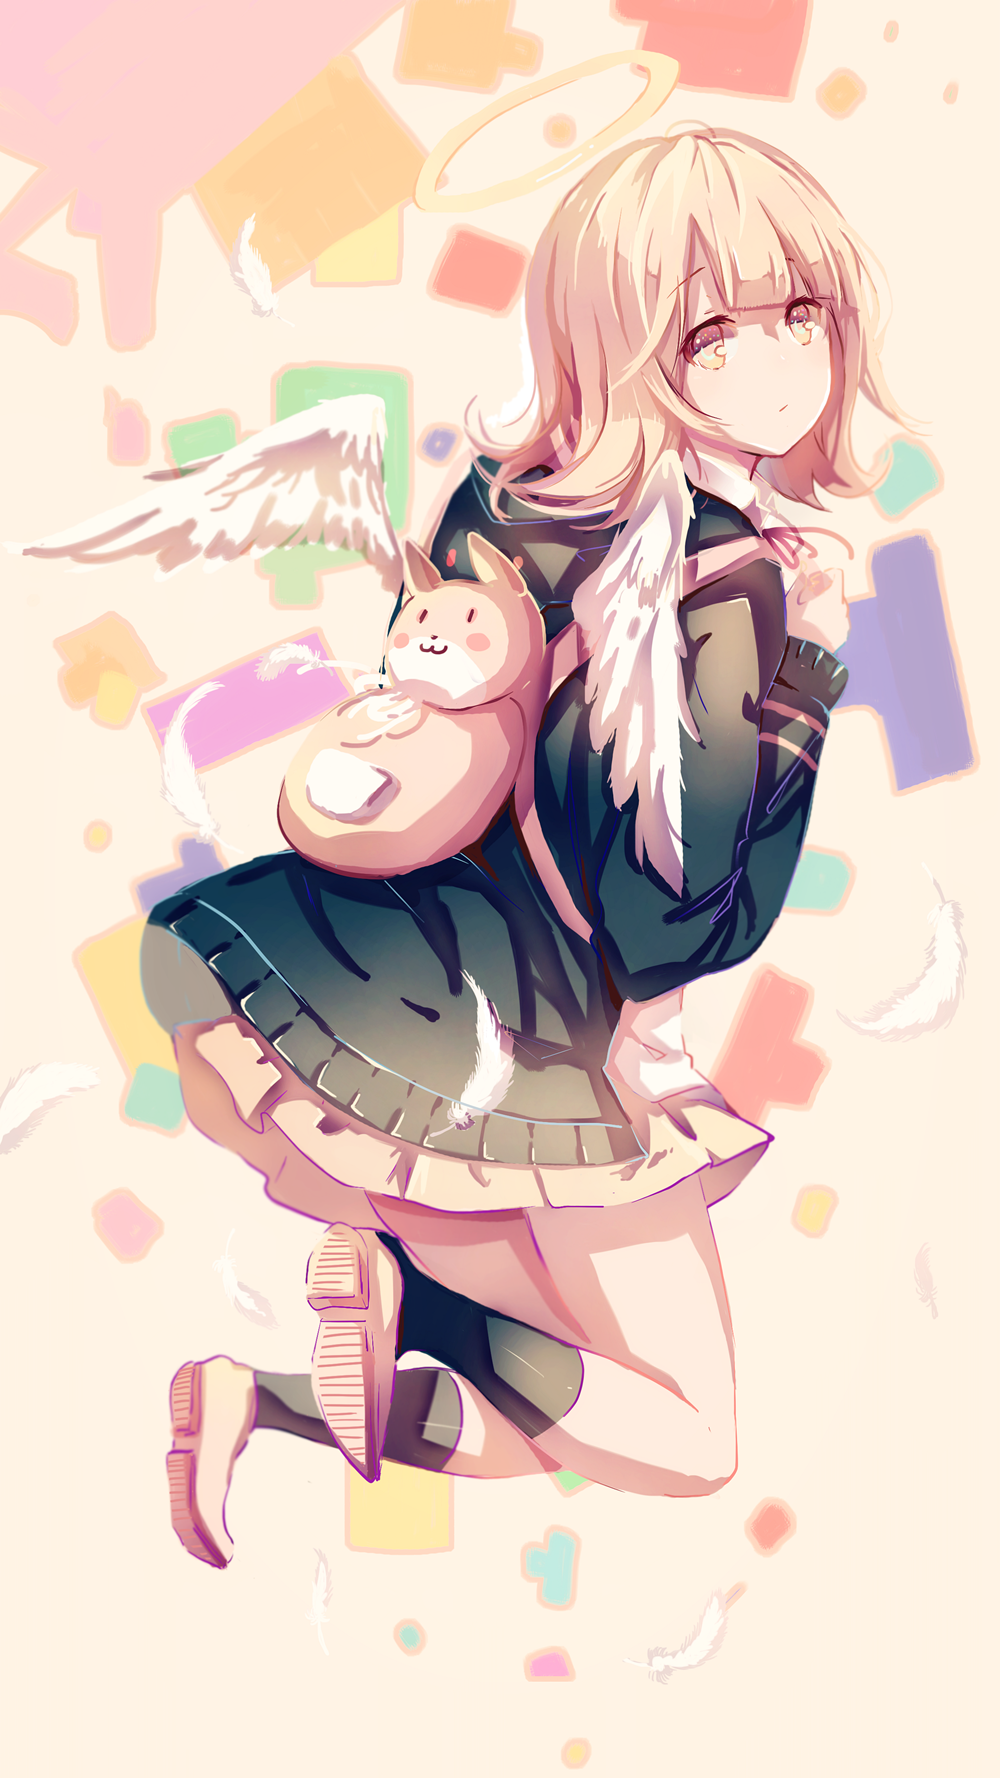 1girl :3 angel angel_wings animal_ears backpack bag bangs beige_skirt black_hoodie black_legwear blush cat_bag cat_ears commentary_request danganronpa dot_eyes eyebrows_visible_through_hair feathers flipped_hair from_behind full_body halo highres hood hoodie light_brown_eyes light_brown_hair long_sleeves looking_at_viewer looking_back nanami_chiaki no_nose open_eyes pleated_skirt pudding_(8008208820) red_neckwear shoes short_hair skirt socks solo super_danganronpa_2 white_feathers white_wings wings